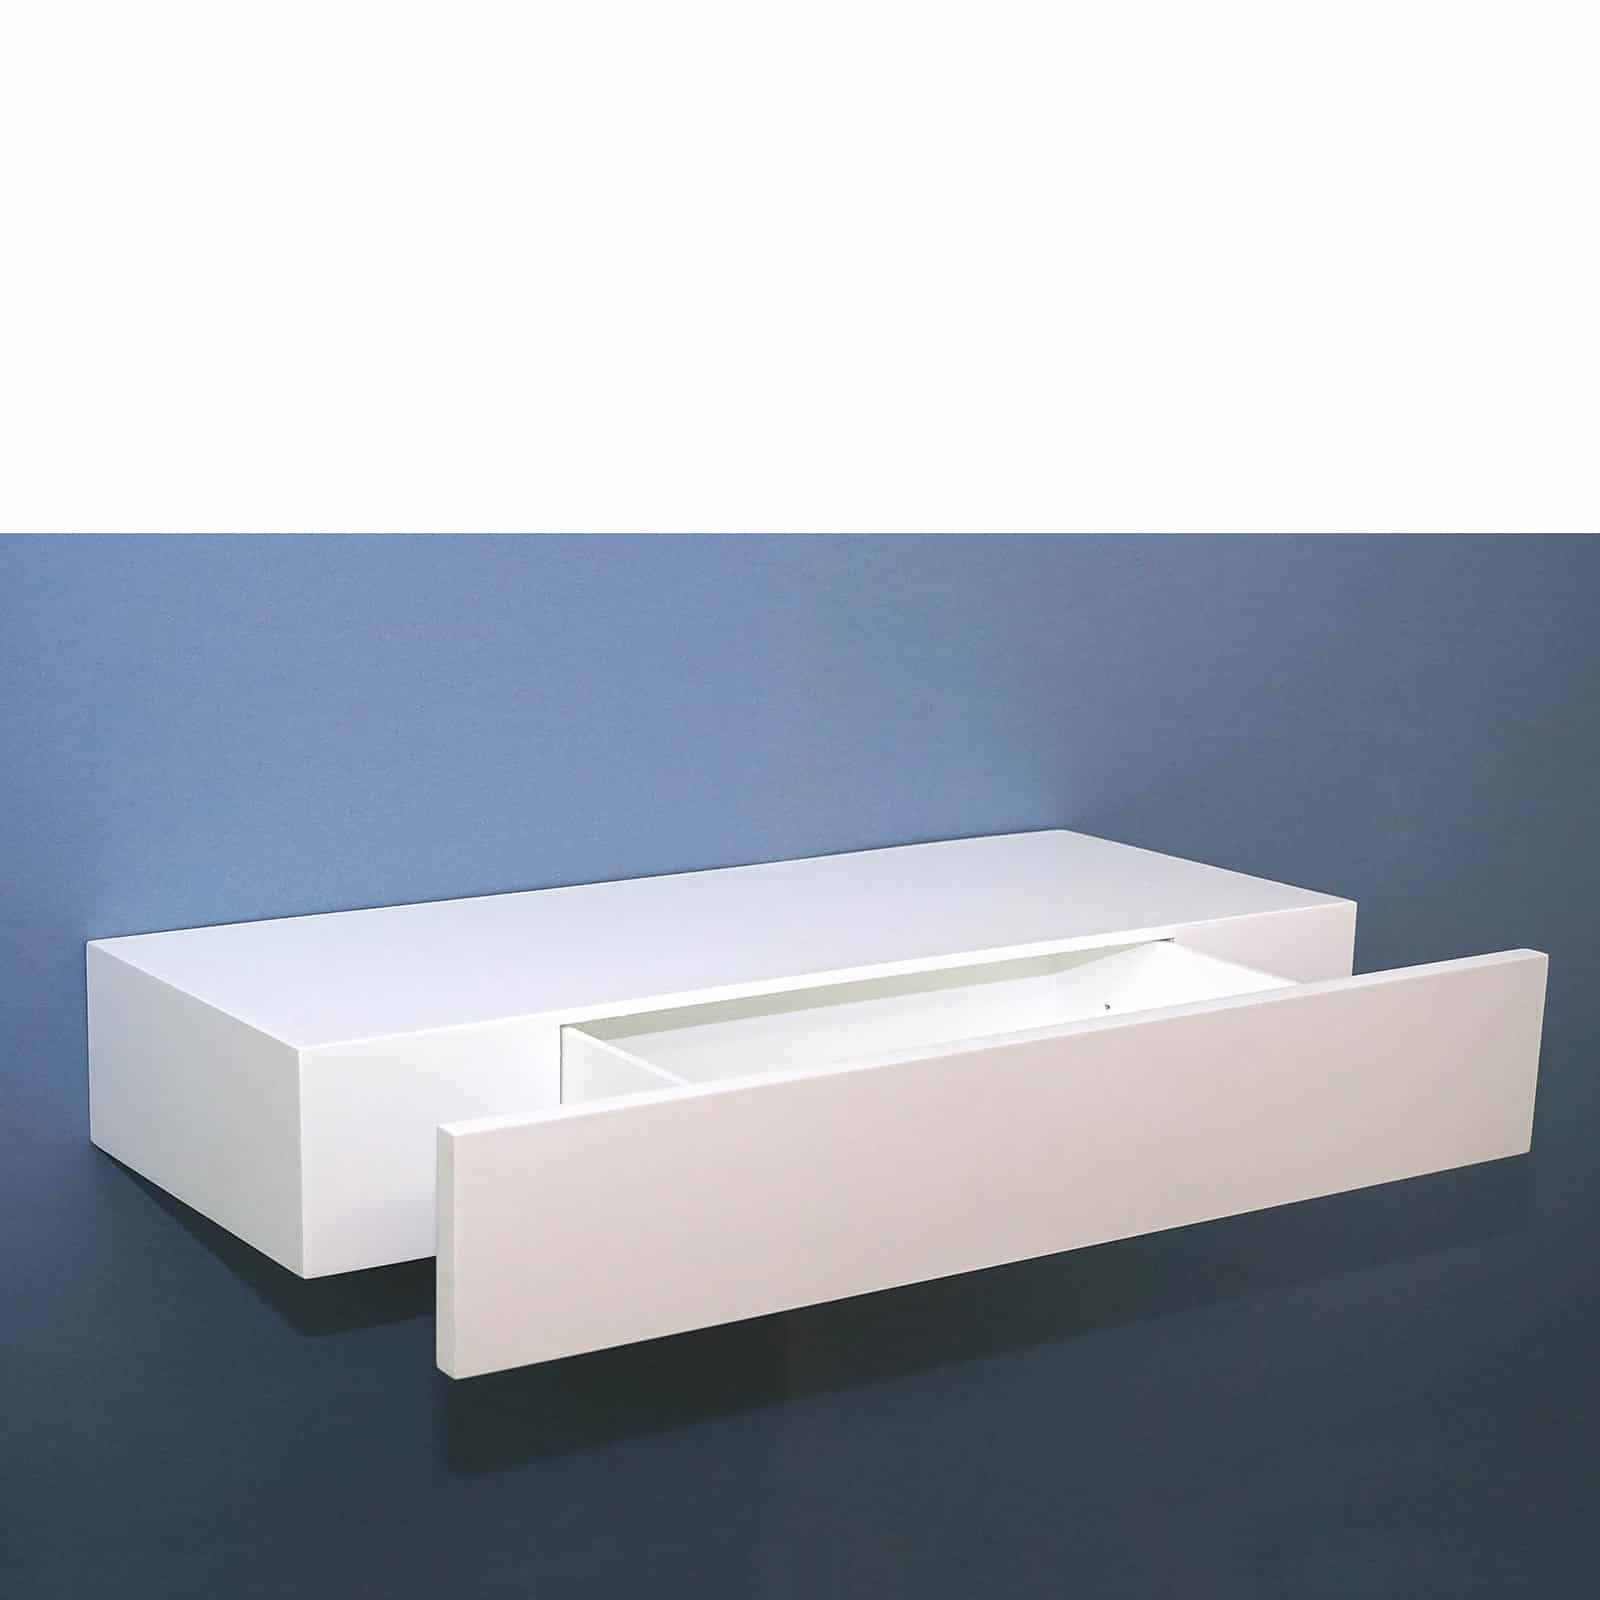 floating shelf with drawer white mastershelf open empty web high gloss plugs clothes hanger the wall sit bathroom sinks kitchen counter storage diy shelves plans mounted hat rack